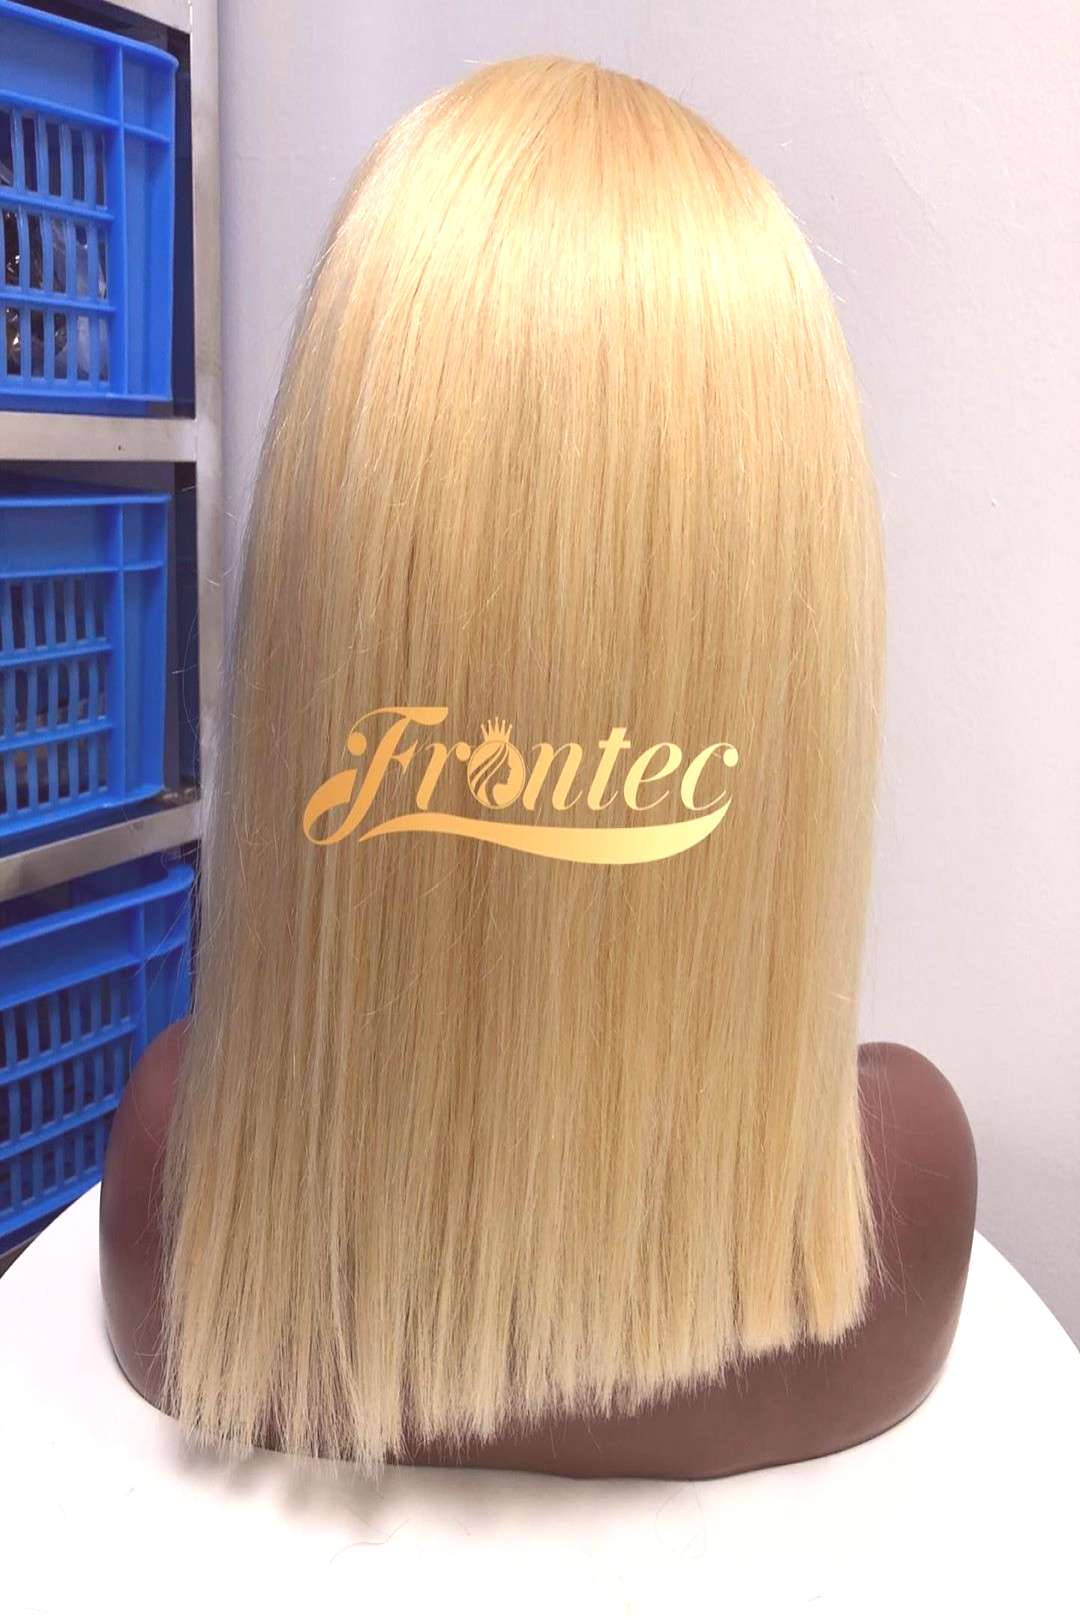 Wholesalewigs Custom Wigs on April 23 2020 one or more people and